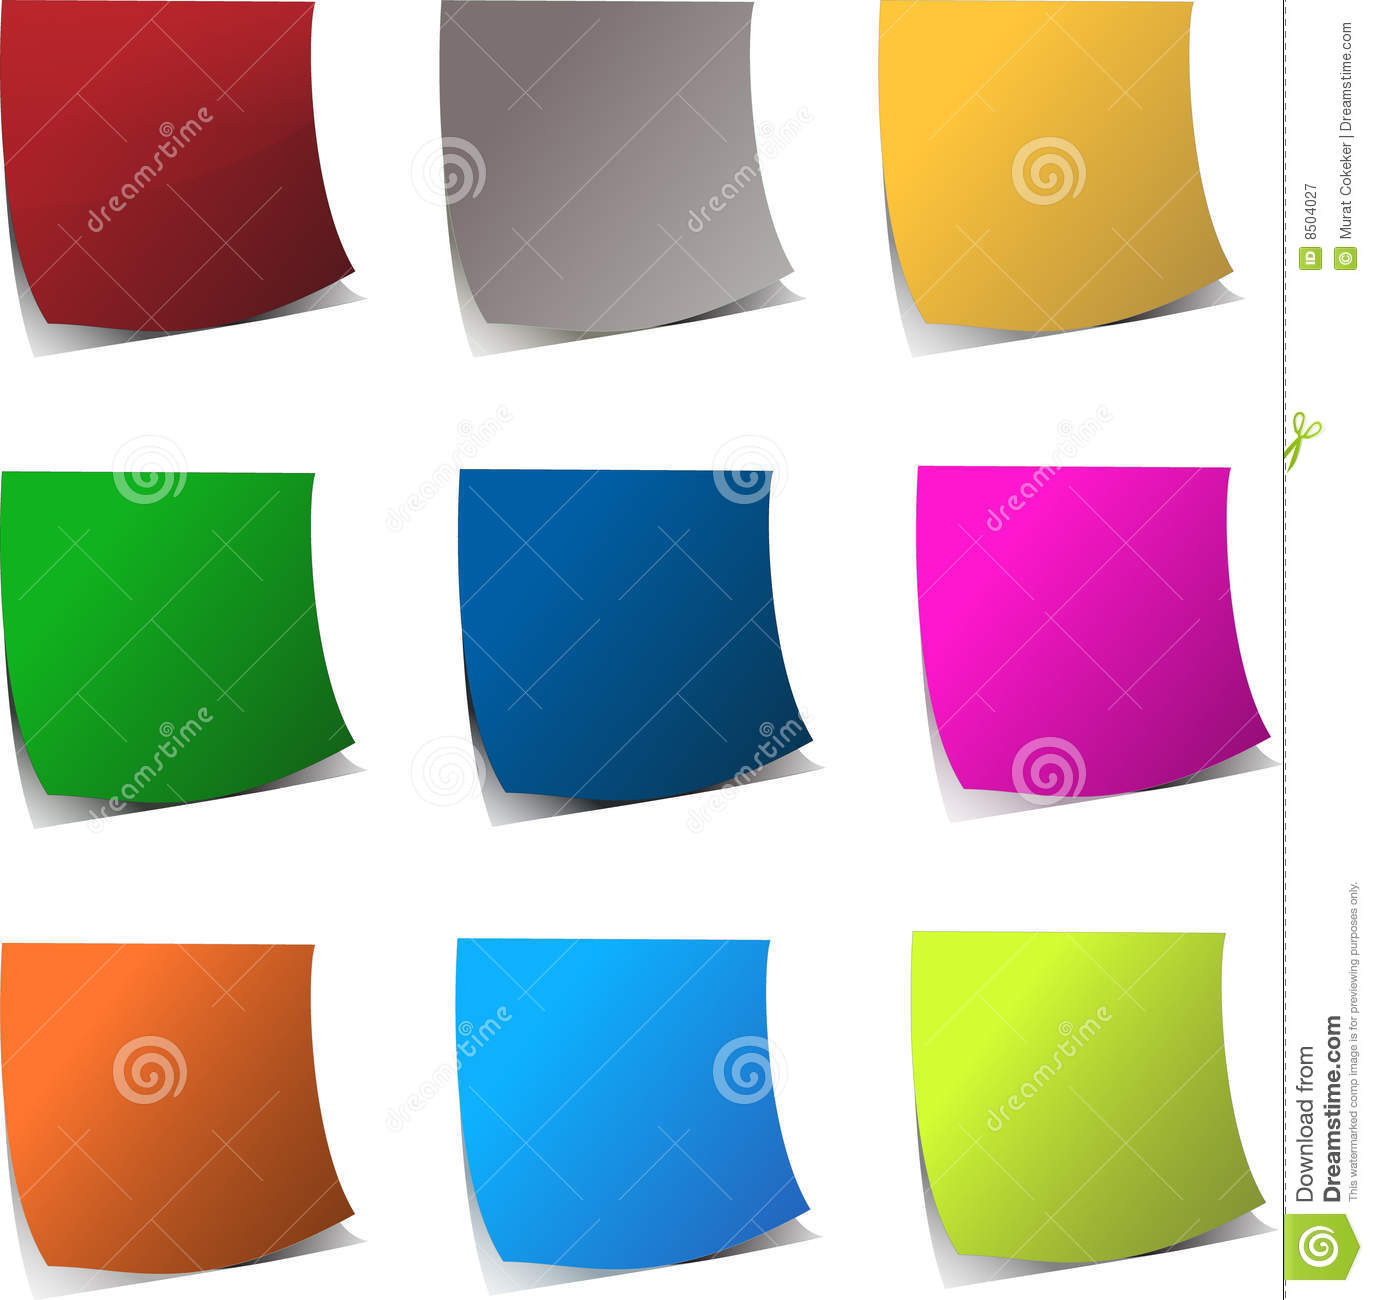 Curly Edge Colorful Realistic Papers Royalty Free Stock.